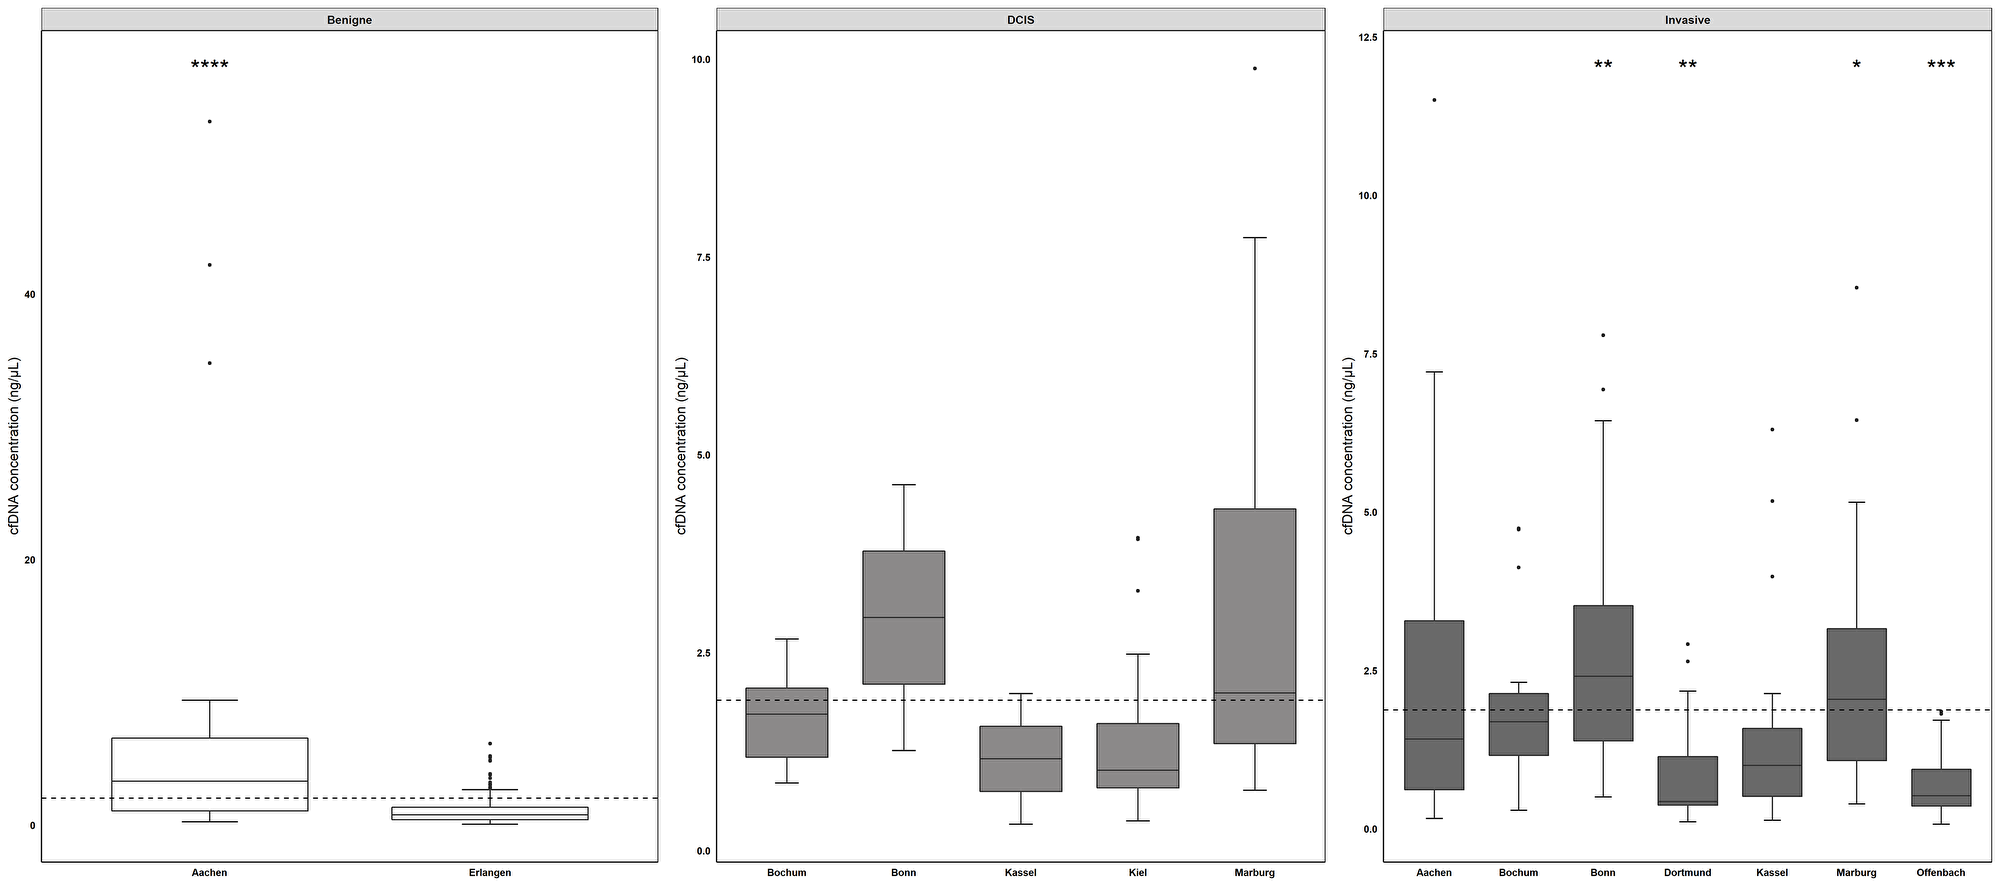 cfDNA concentrations across different sites differ significantly.